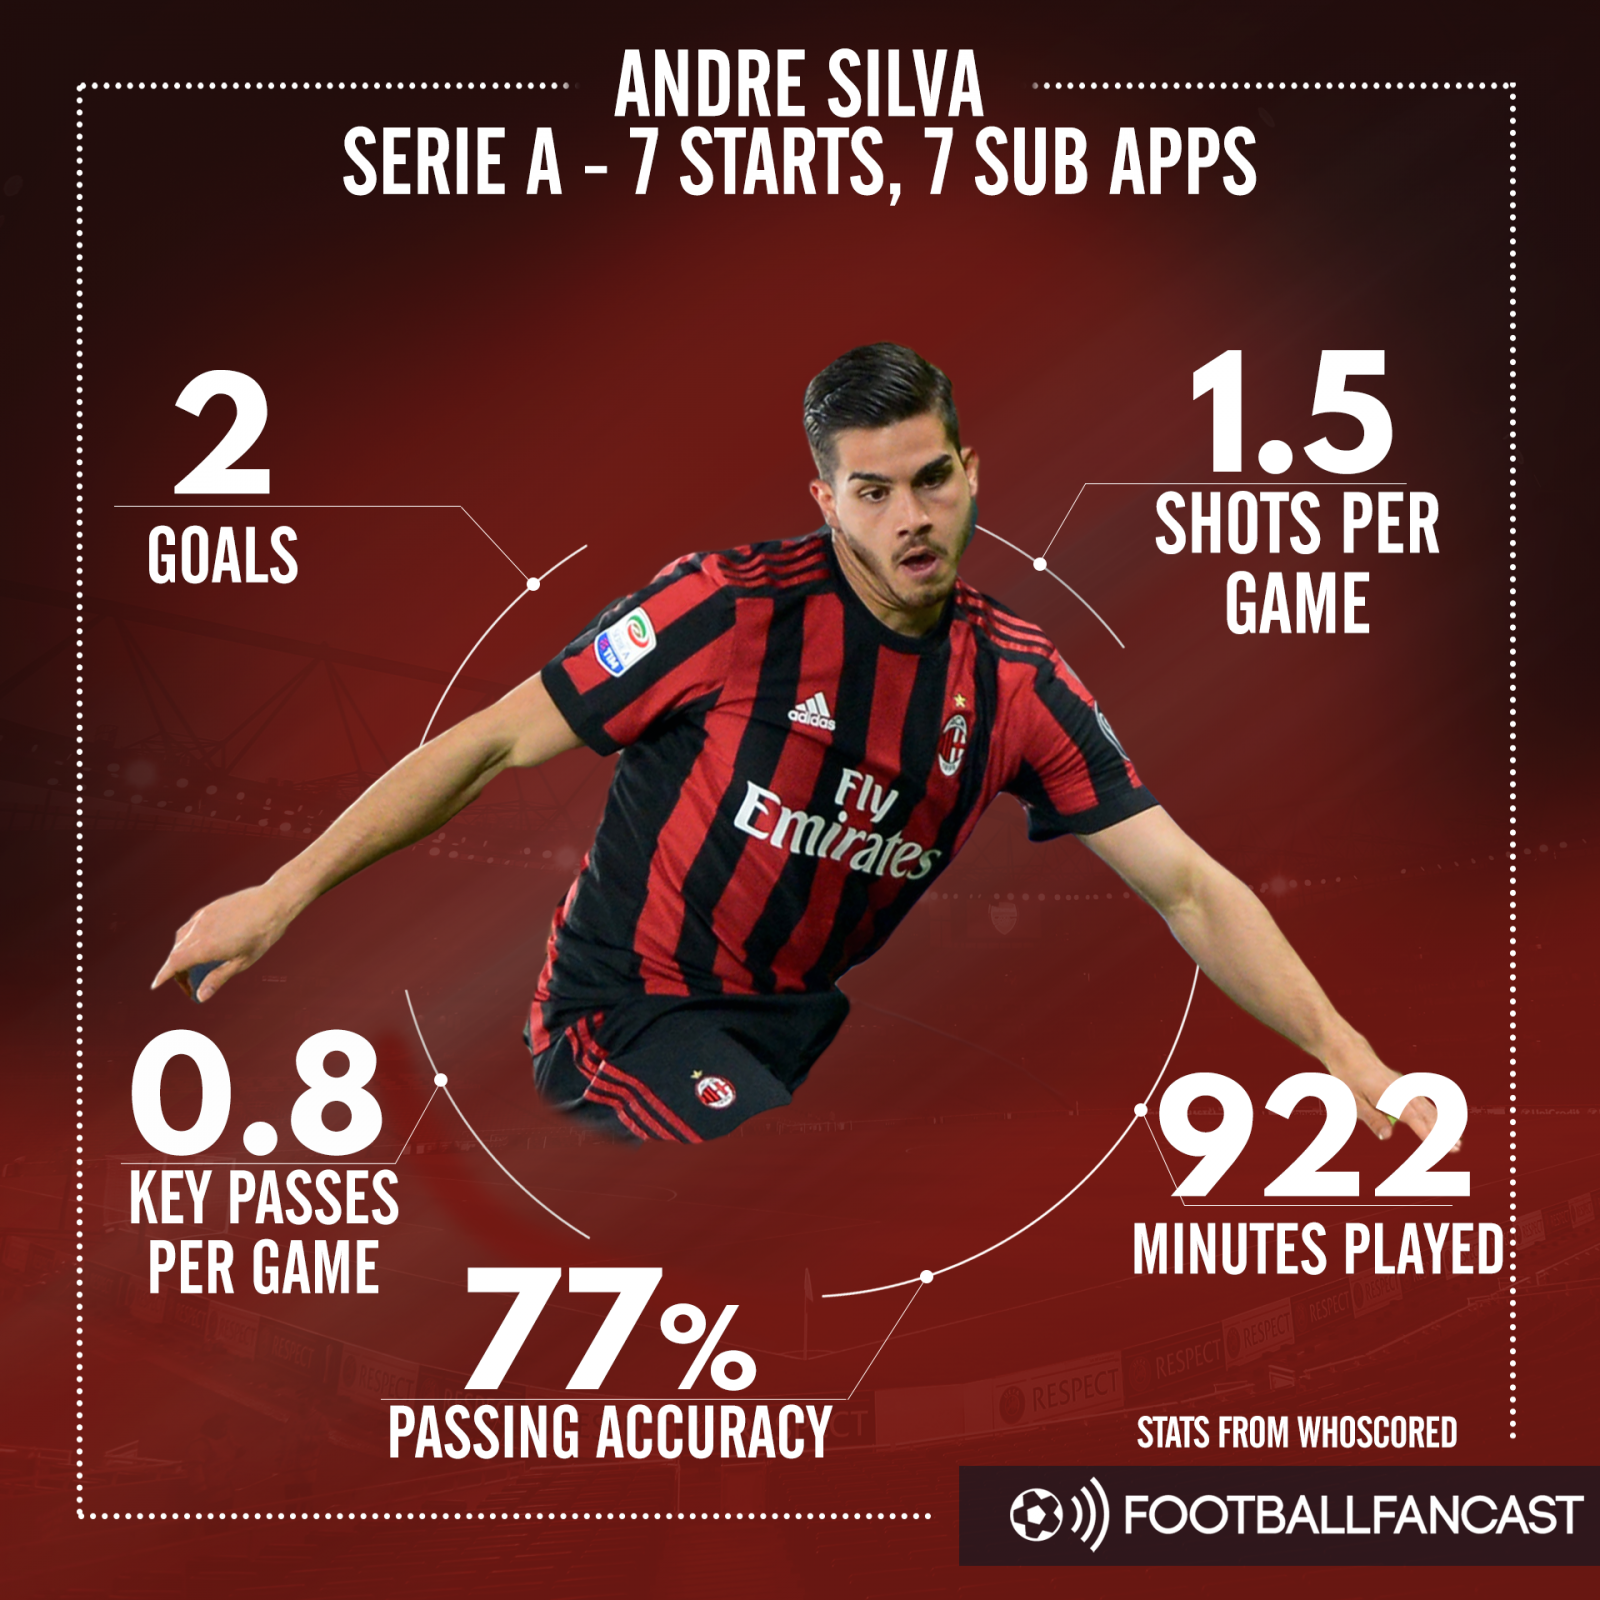 Andre Silva hasn't made the impact he would have liked at AC Milan